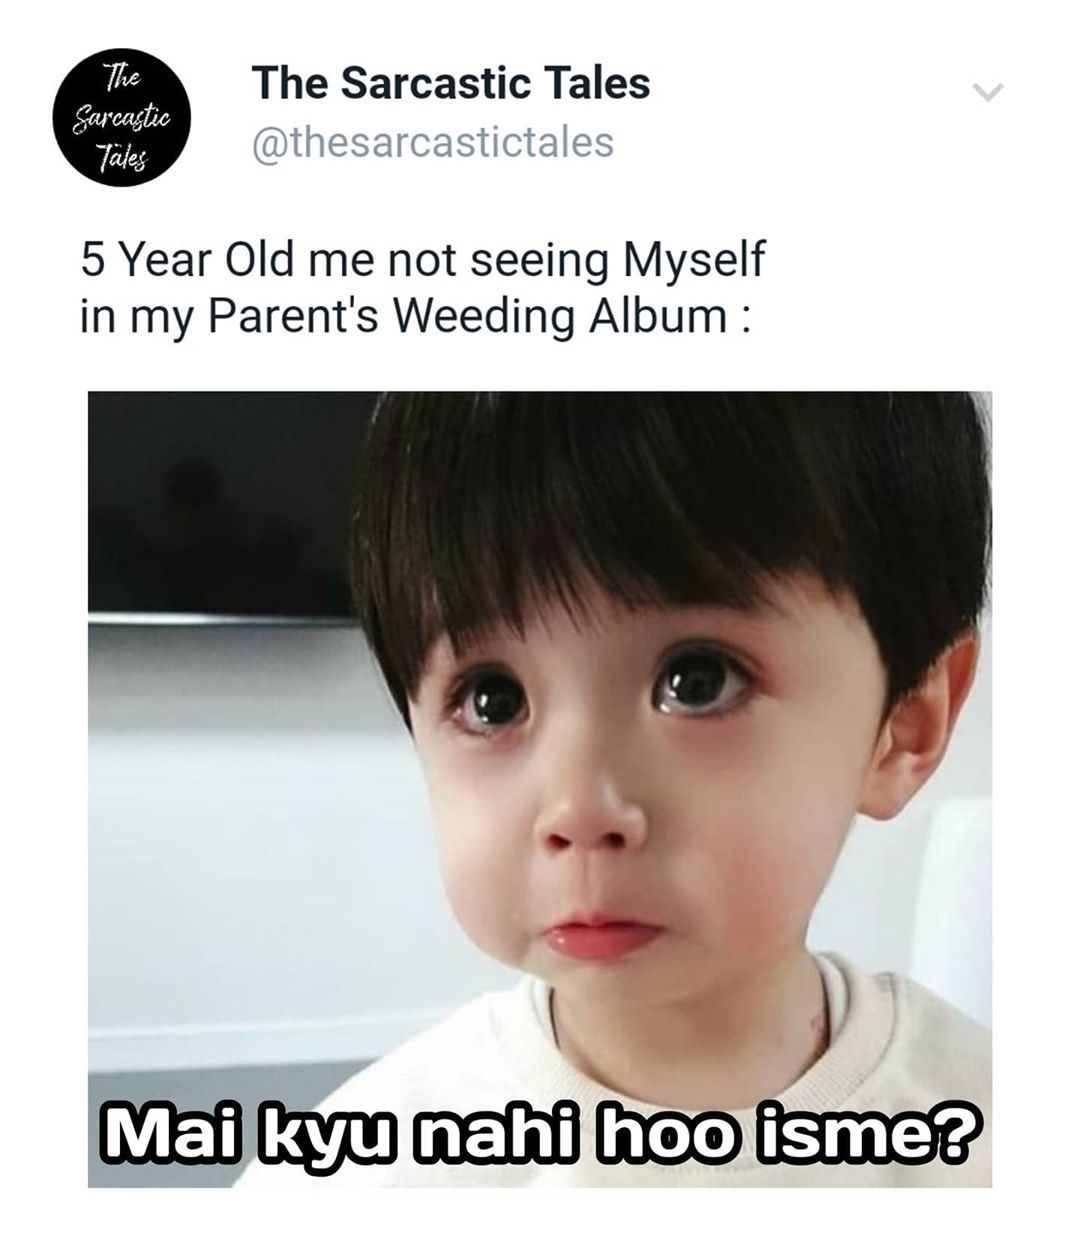 Pin By Laiba Shakoor On Memes In 2021 Crazy Funny Memes Cute Funny Quotes Very Funny Memes